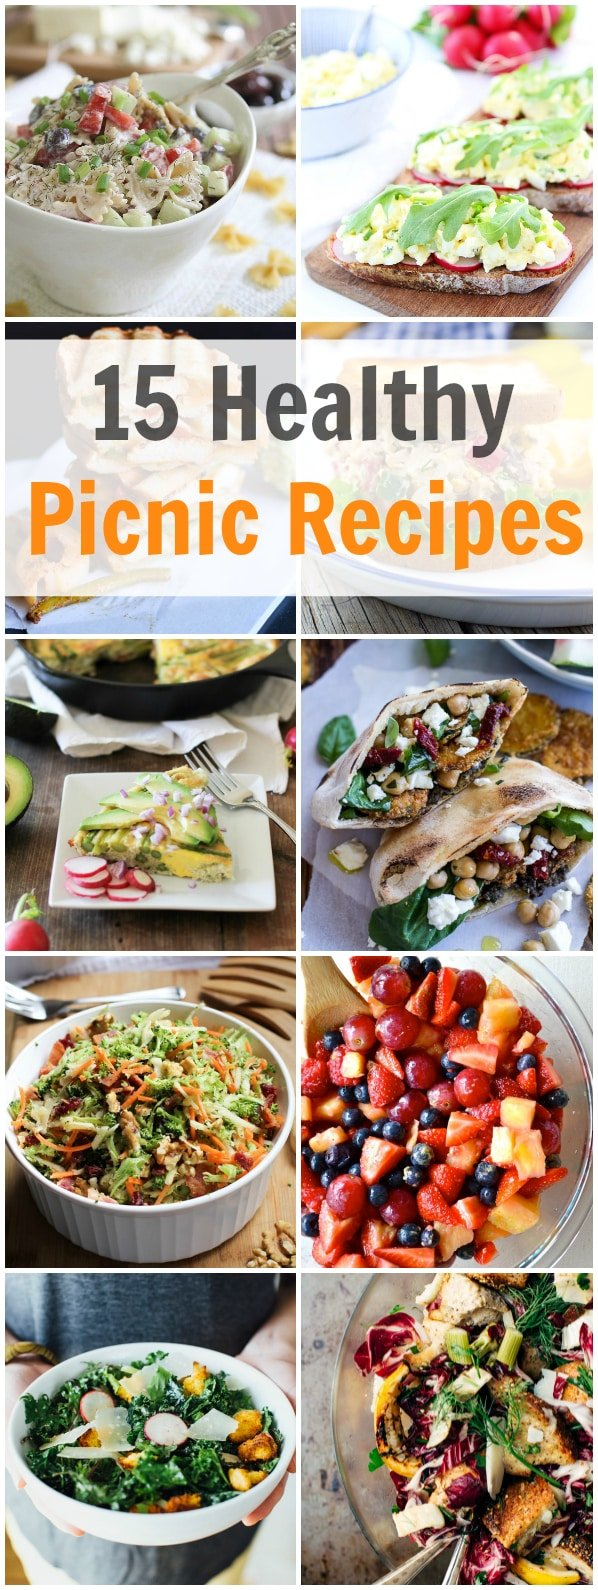 15 Healthy Picnic Recipes Summer Primavera Kitchen